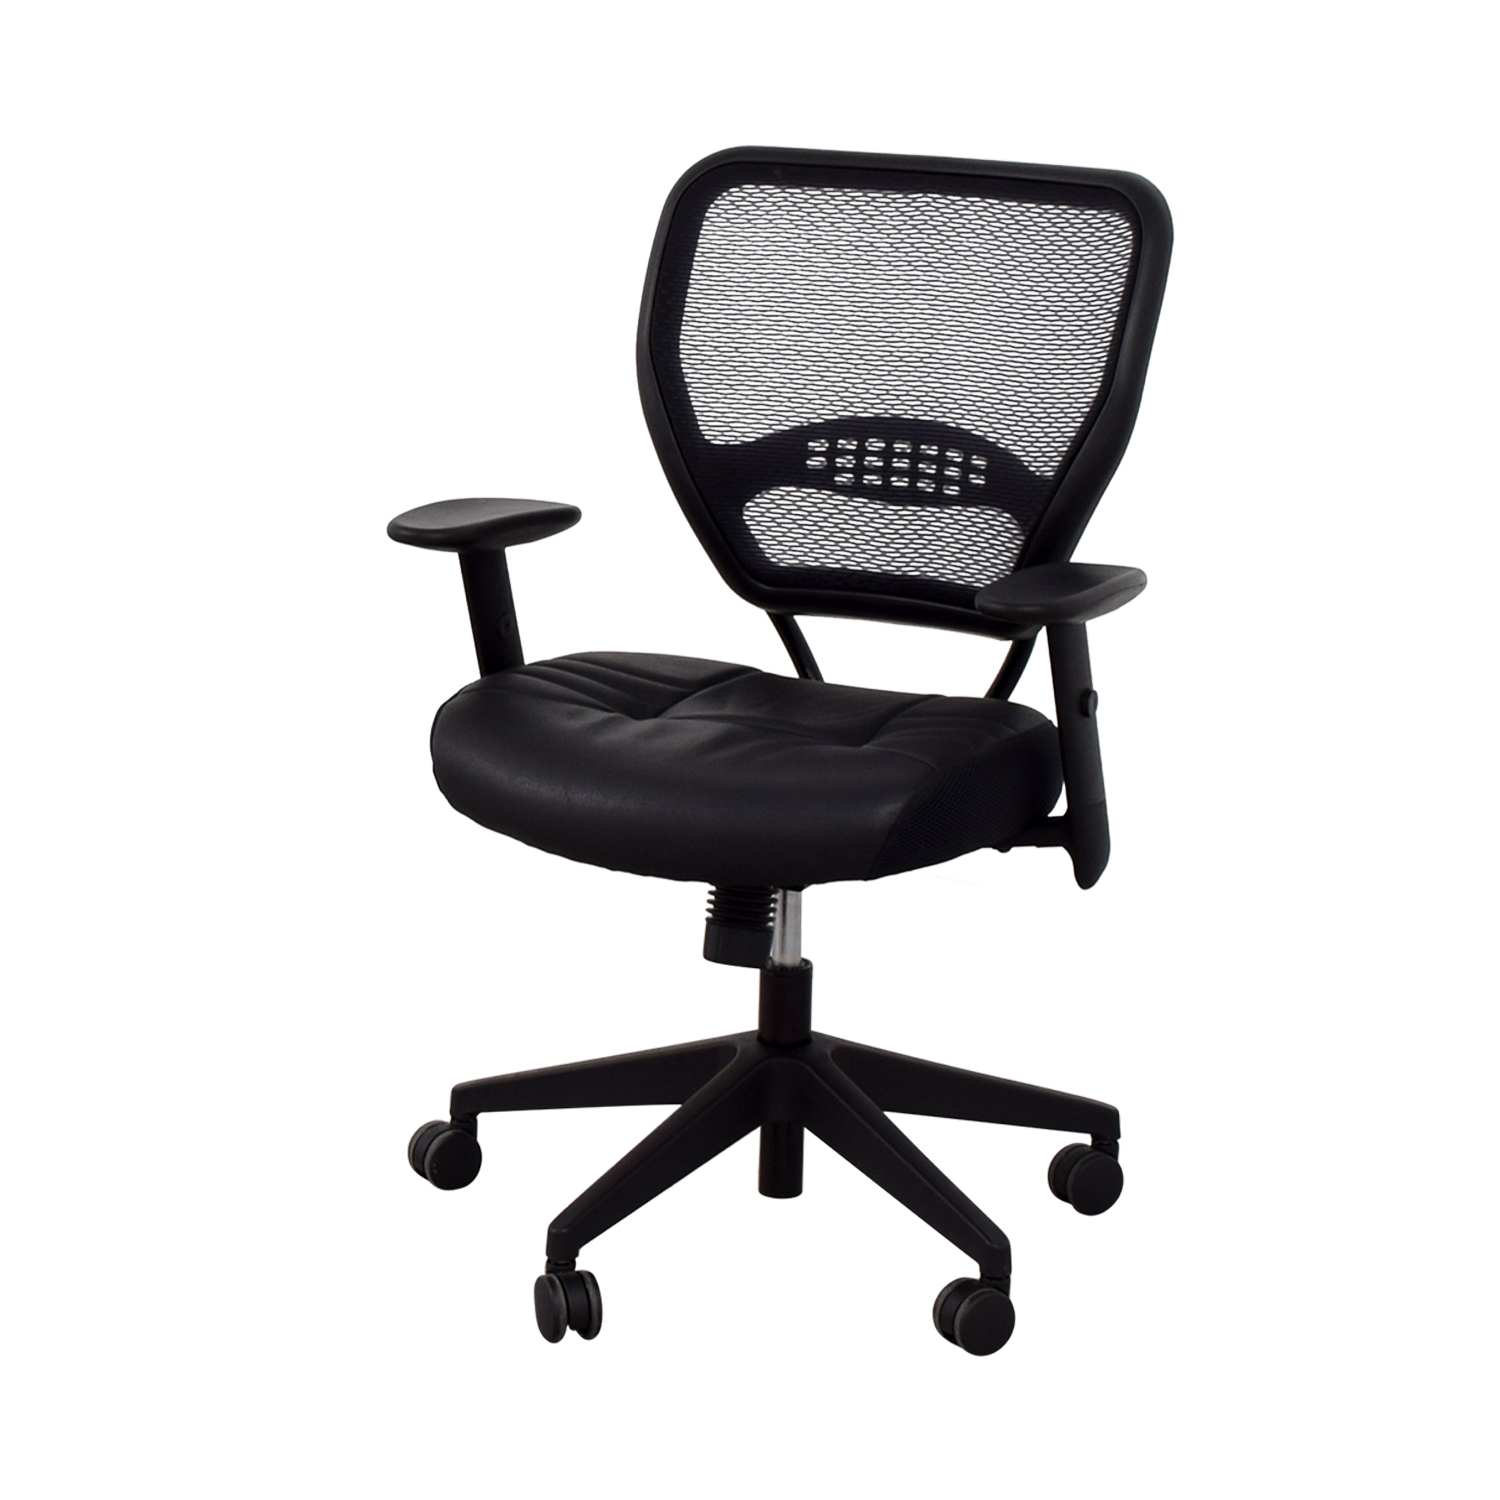 Office Star Office Star Black Eco Leather Seat and Air Grid Back Chair dimensions